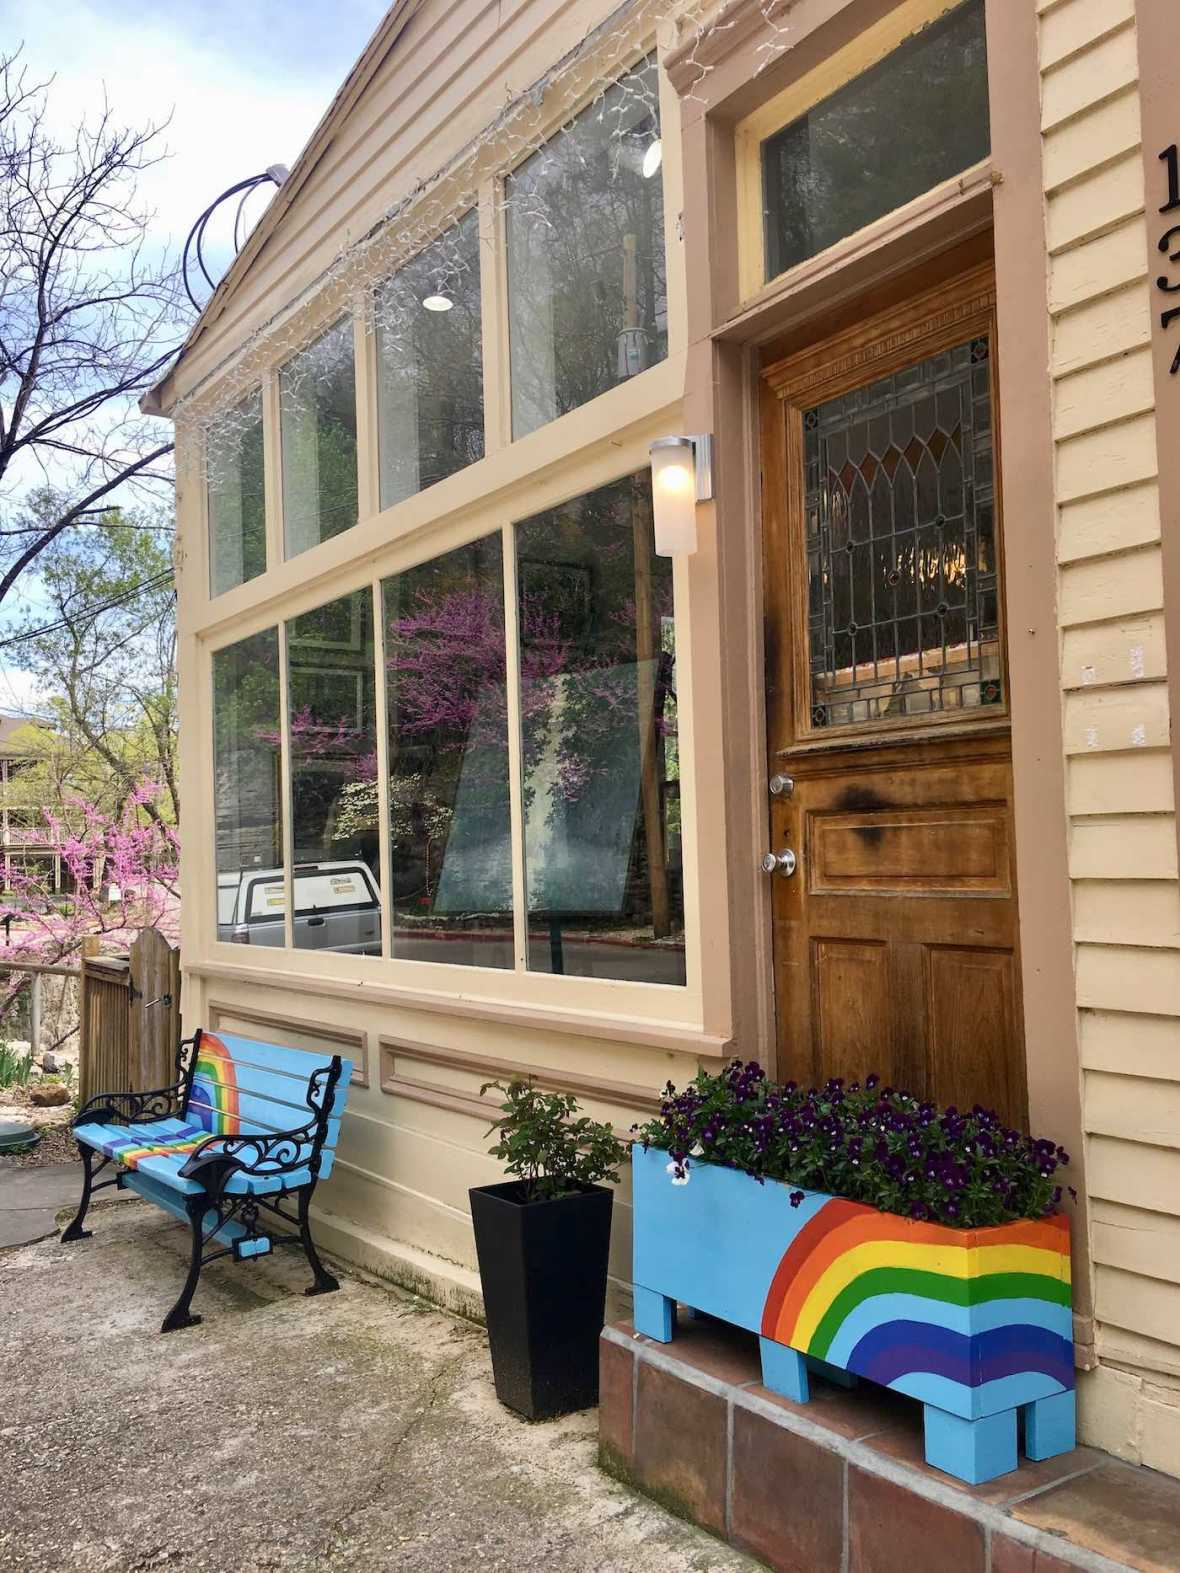 Art gallery in LGBTQ friendly Eureka Springs, Arkansas